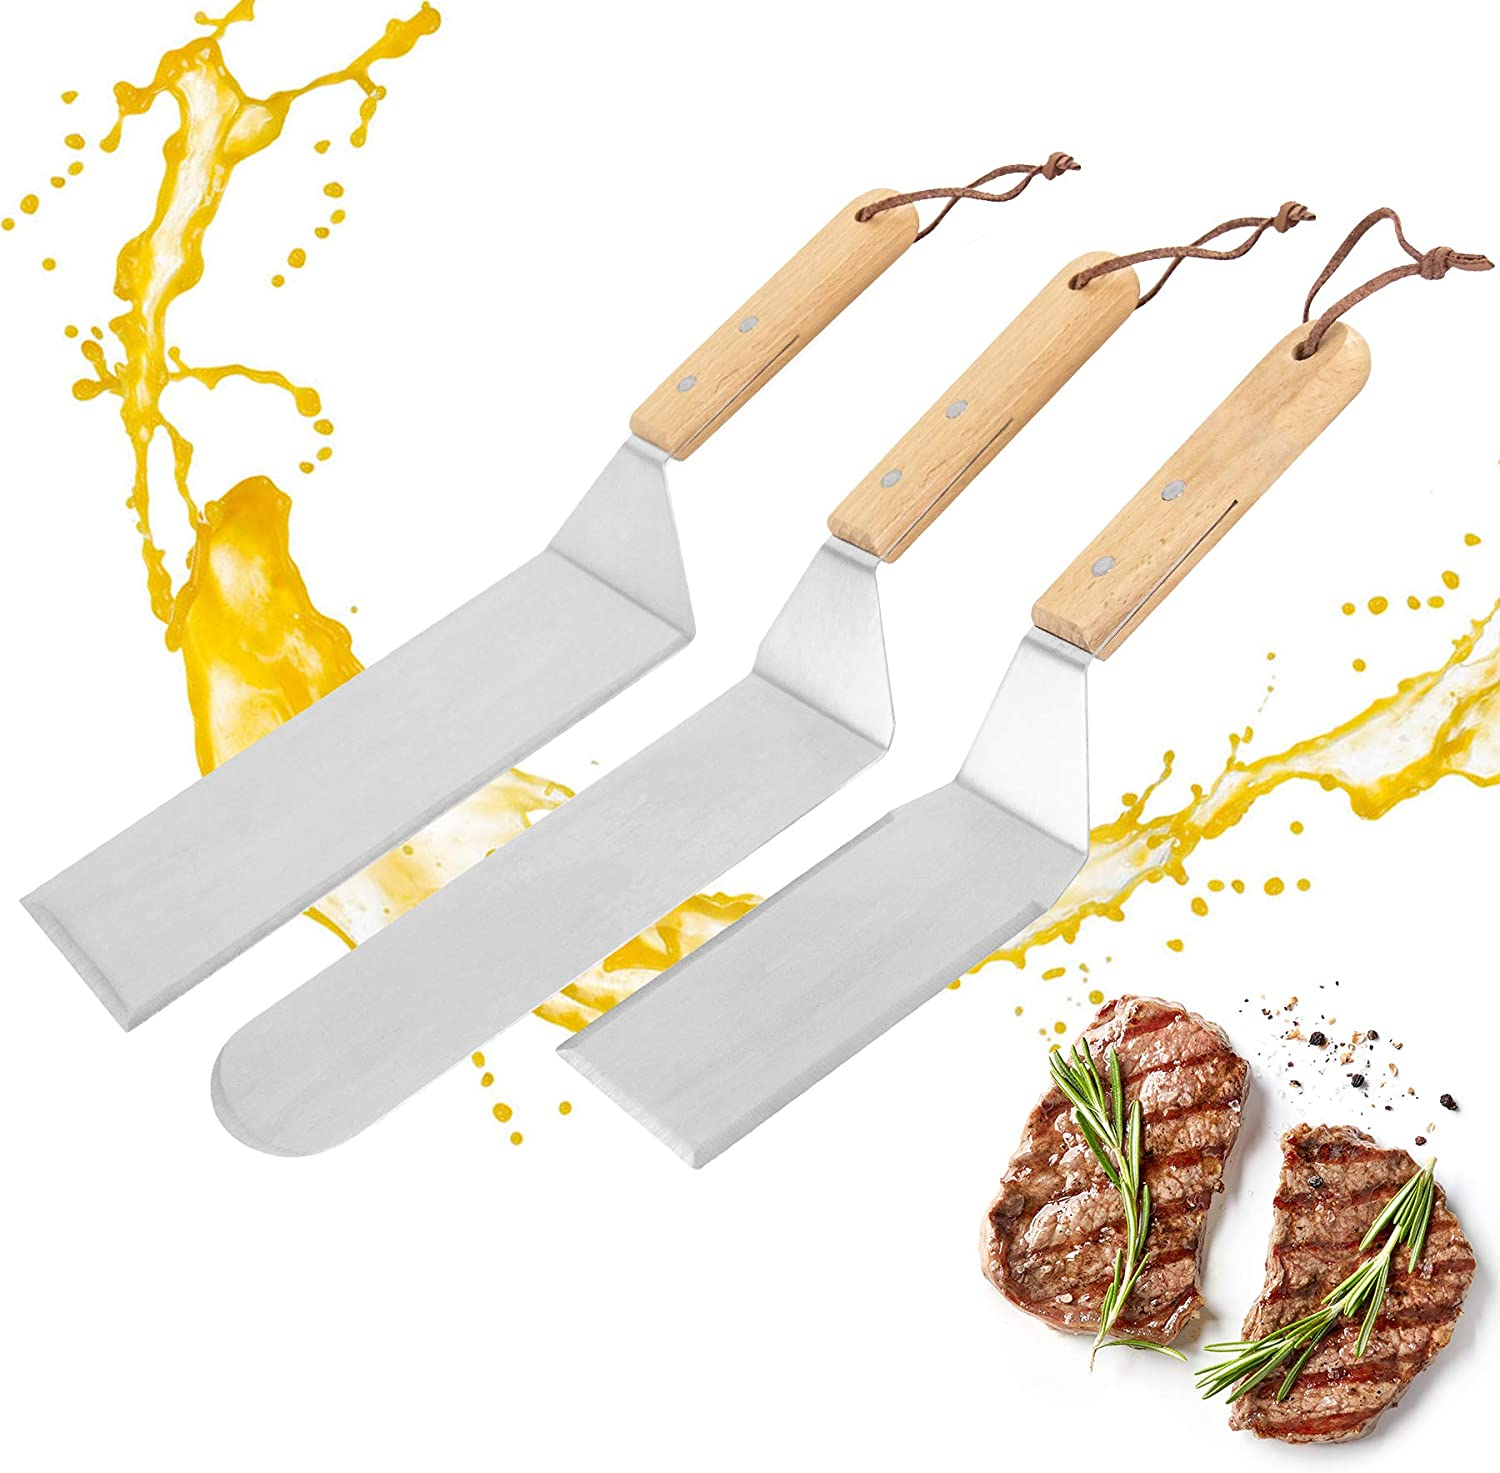 UUSHER Griddle Accessories Kit,3 PCS Food Grade Stainless Steel Griddle Spatula Set with Beech Handle for Outdoor BBQ, Teppanyaki,Steak and Camping